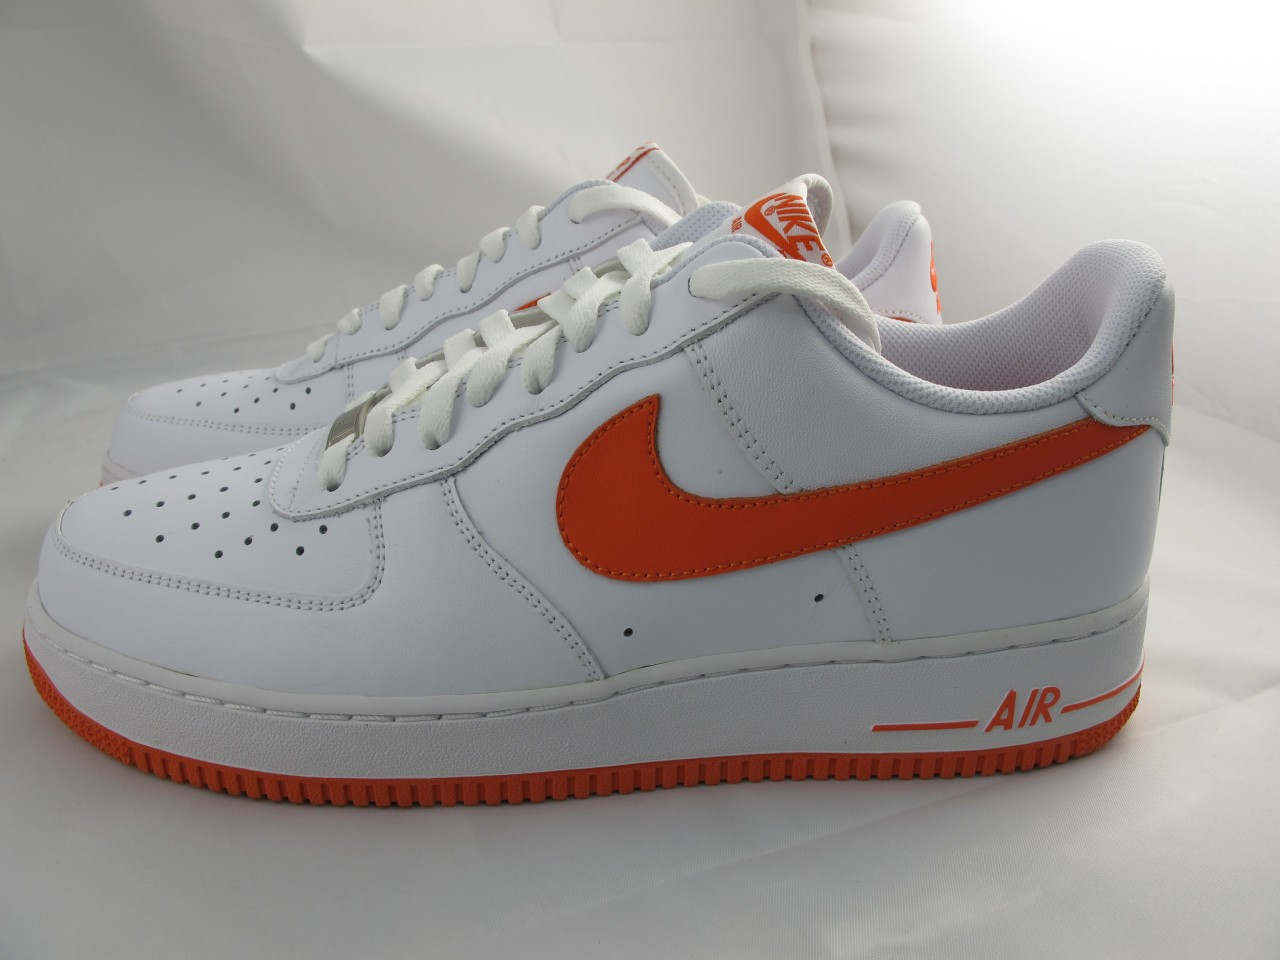 NEW-MEN-039-S-NIKE-AIR-FORCE-1-039-17-315122-181-WHITE-ORANGE-BLAZE